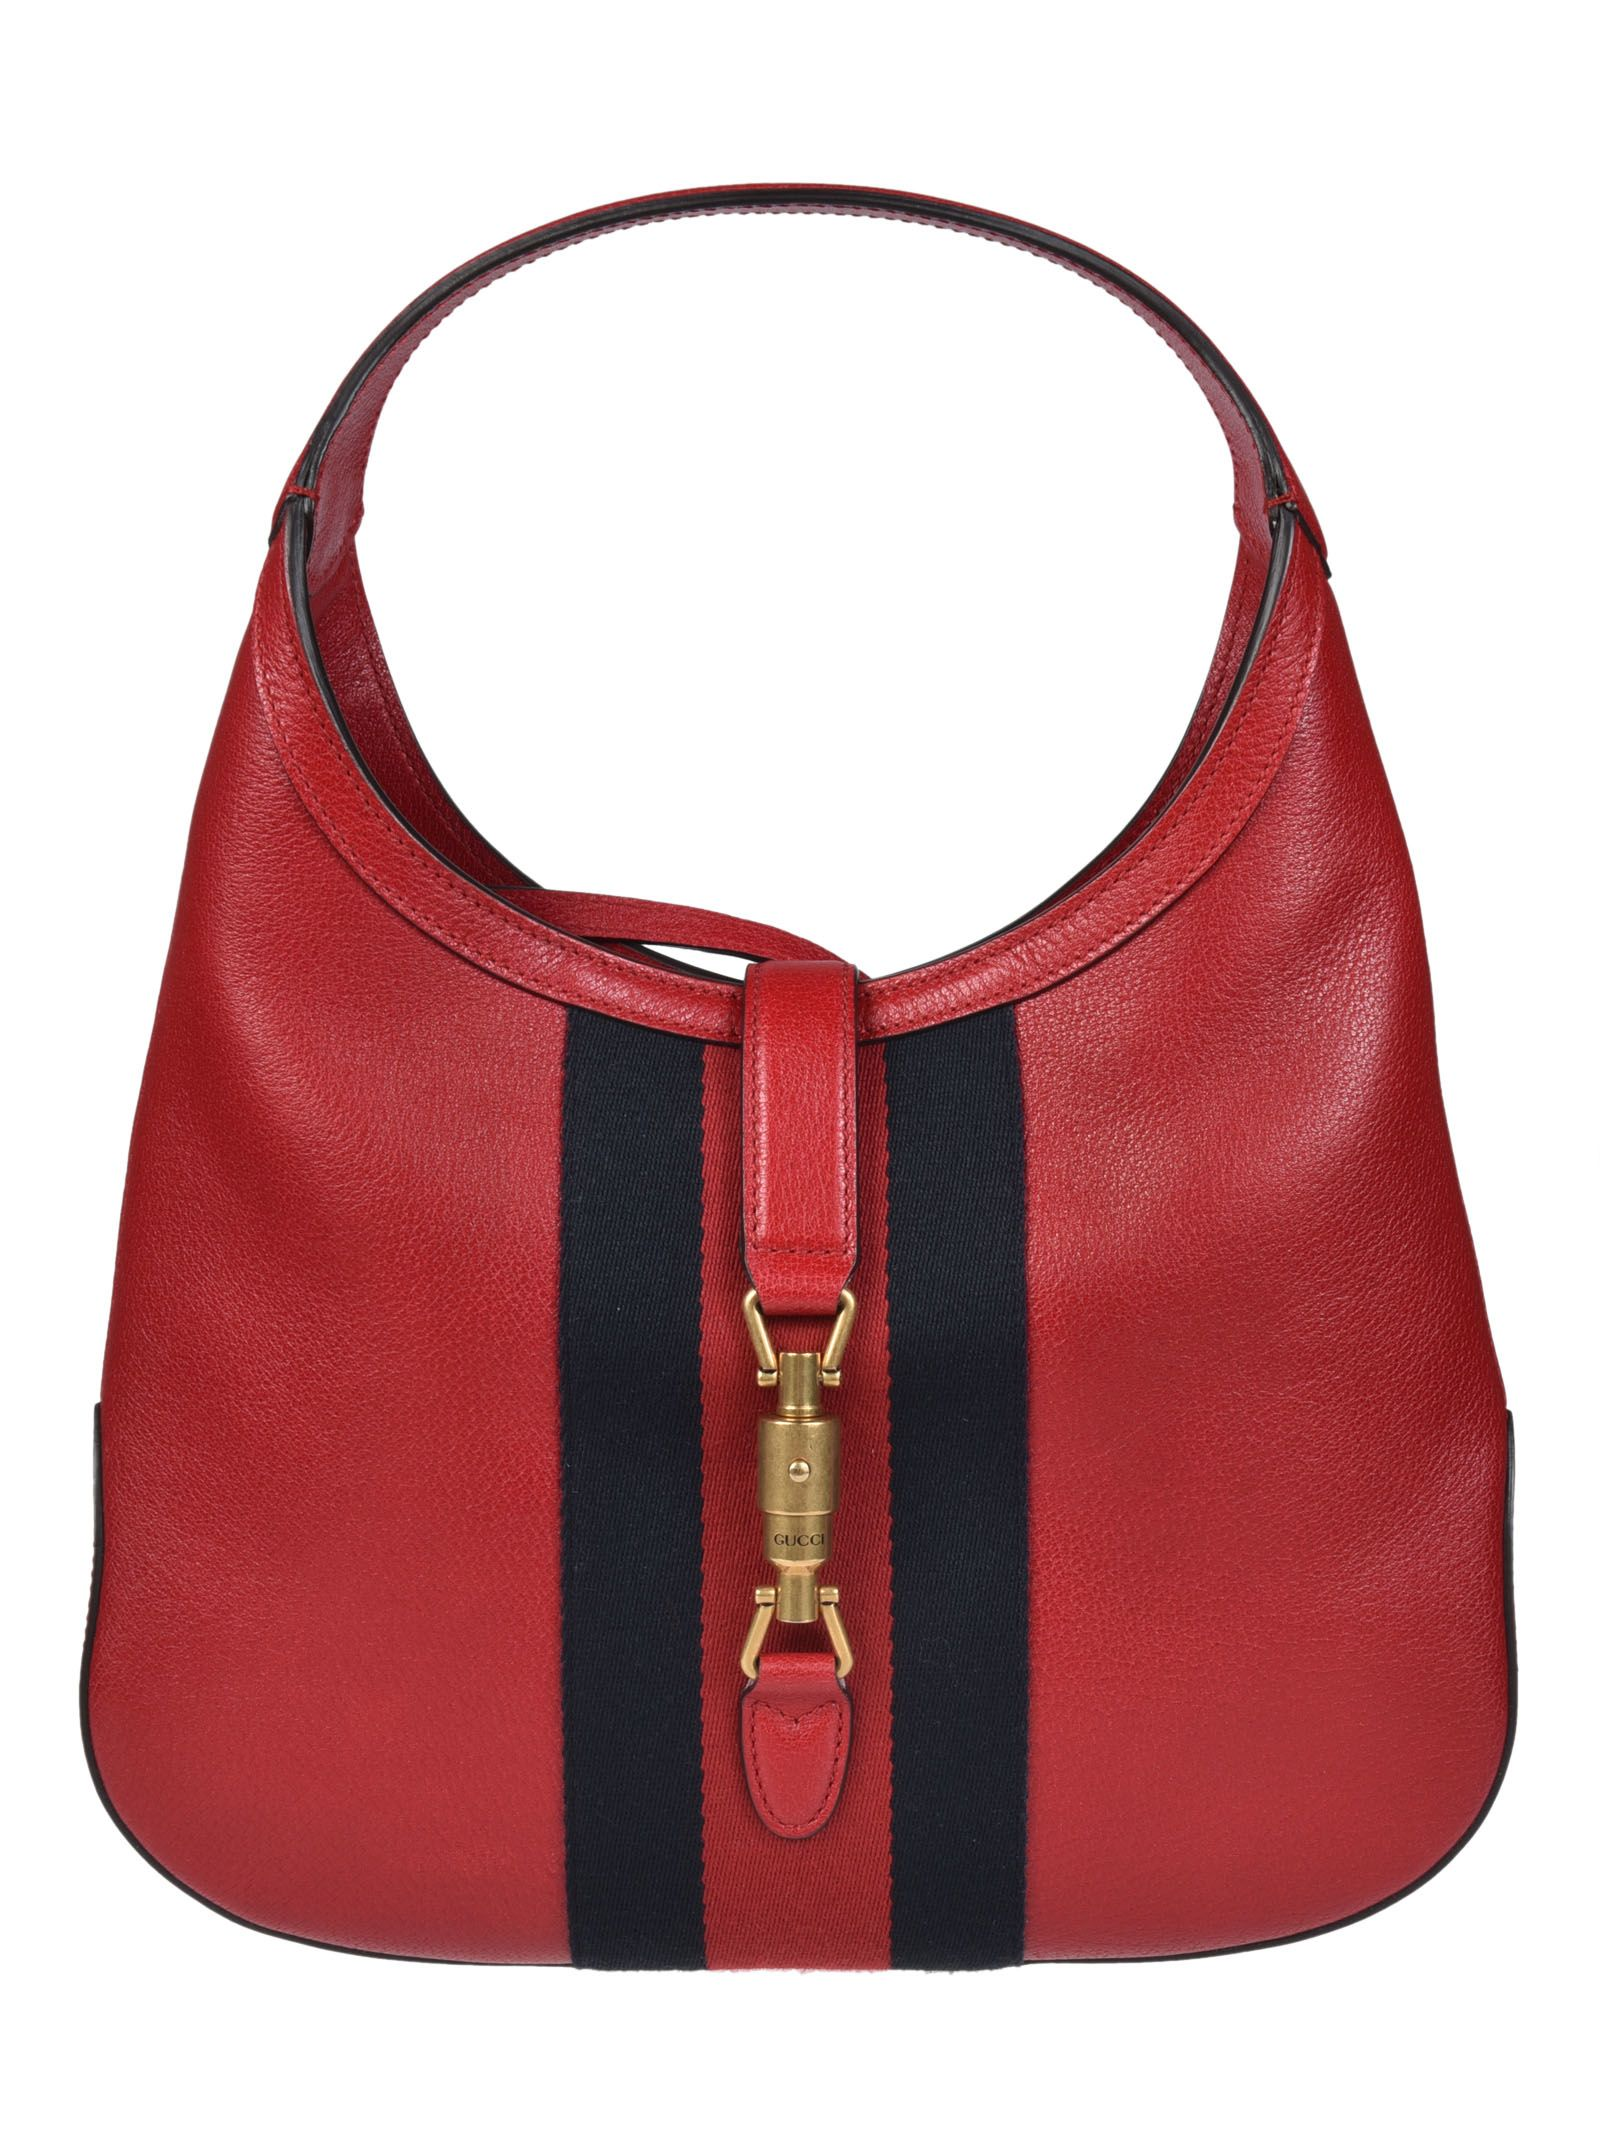 31b25037383a Gucci Gucci Jackie Soft Tote - Red - 8214989 | italist